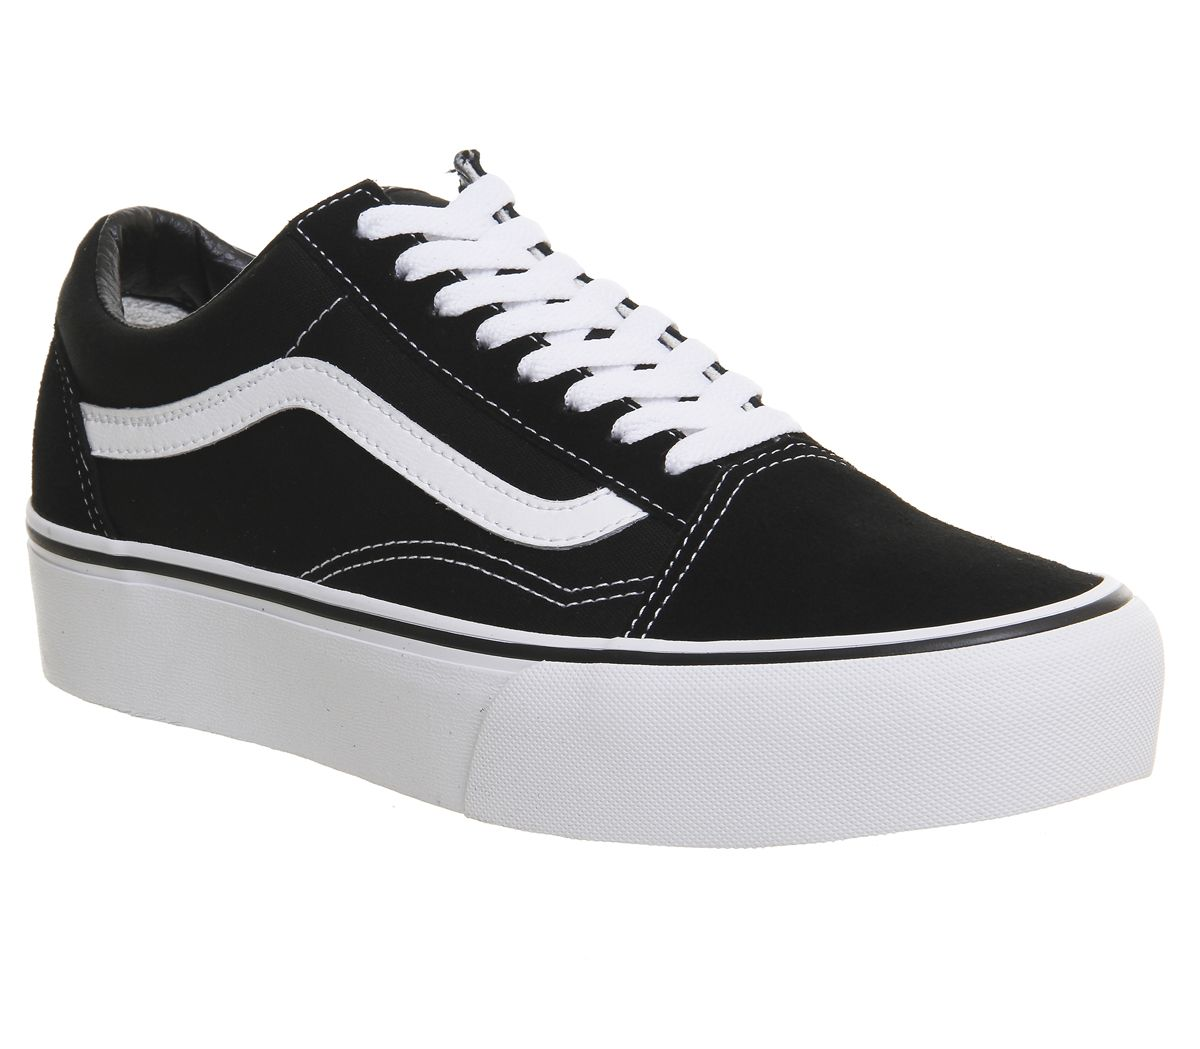 92ed0076dbb172 Vans Old Skool Platform Black White - Hers trainers